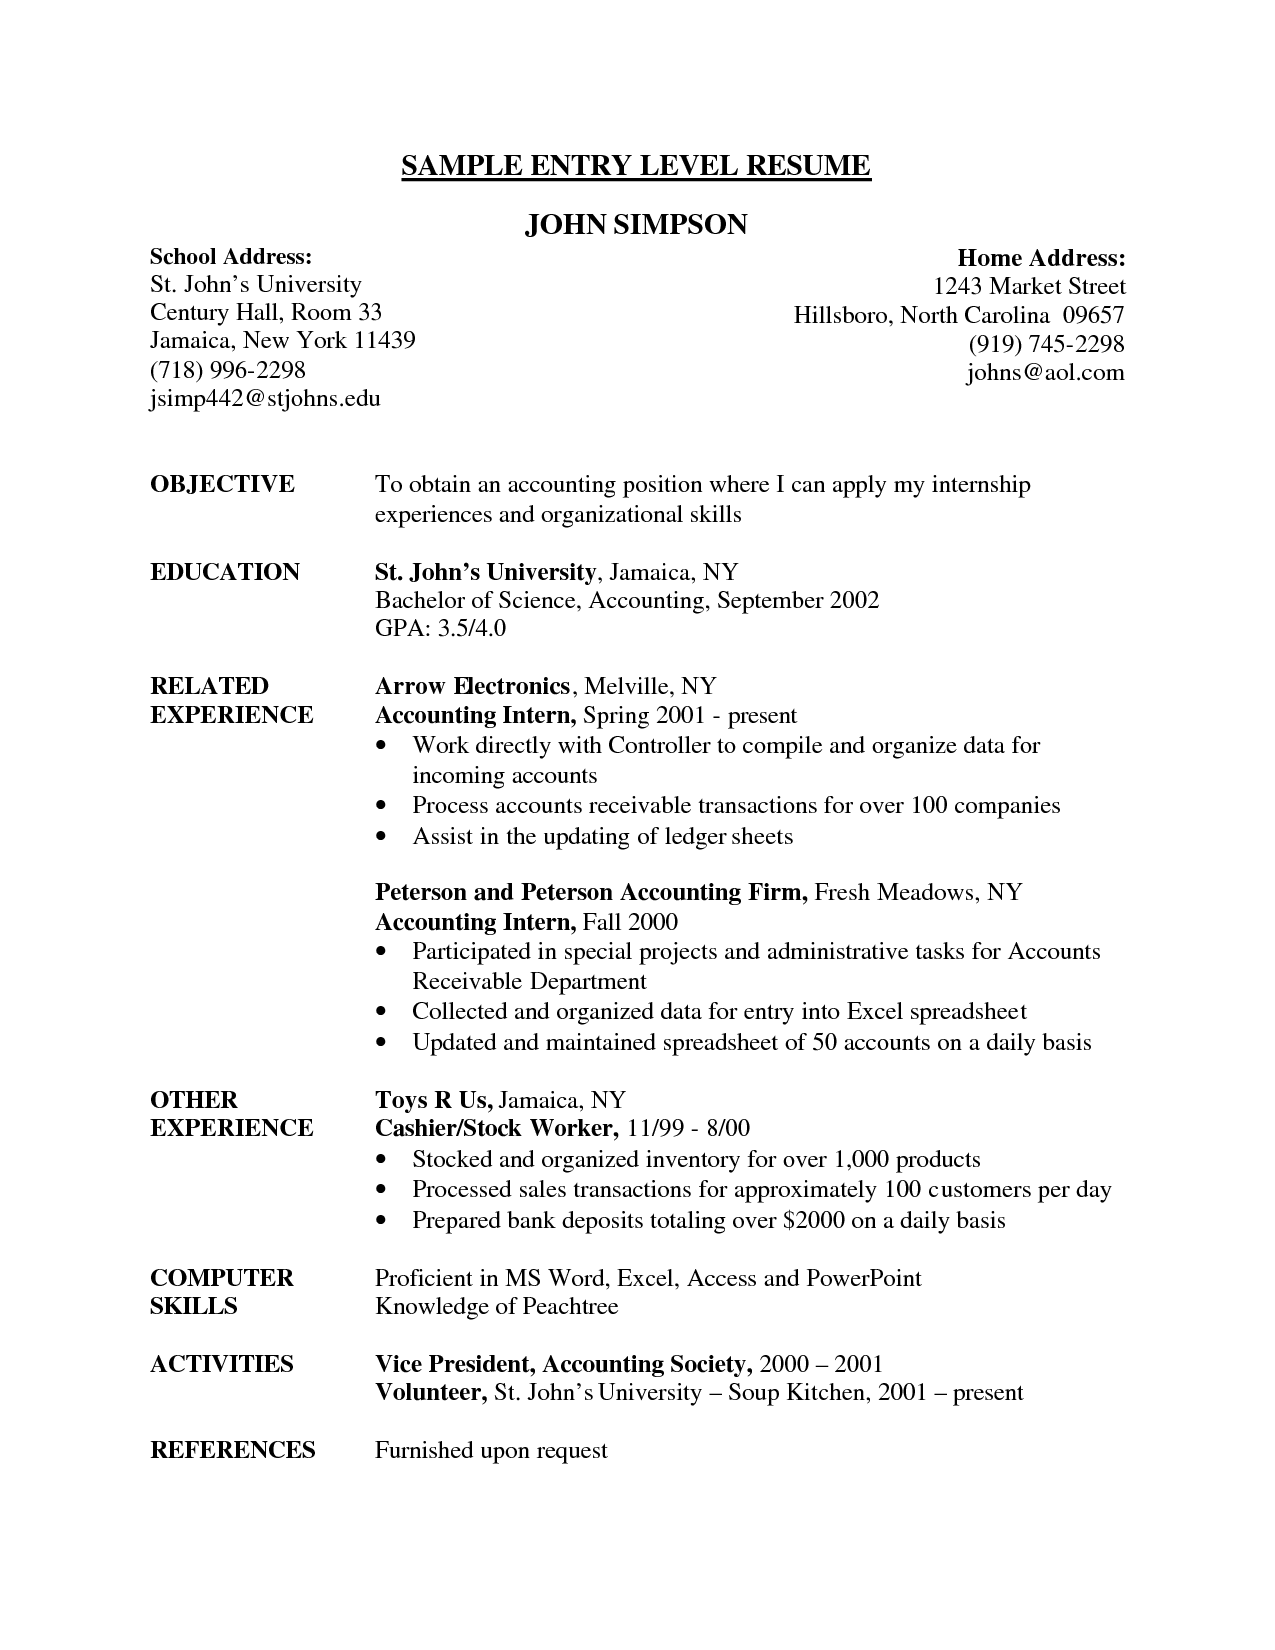 Example Of Resume Profile Entry Level   Http://www.resumecareer.info  Accounting Intern Resume